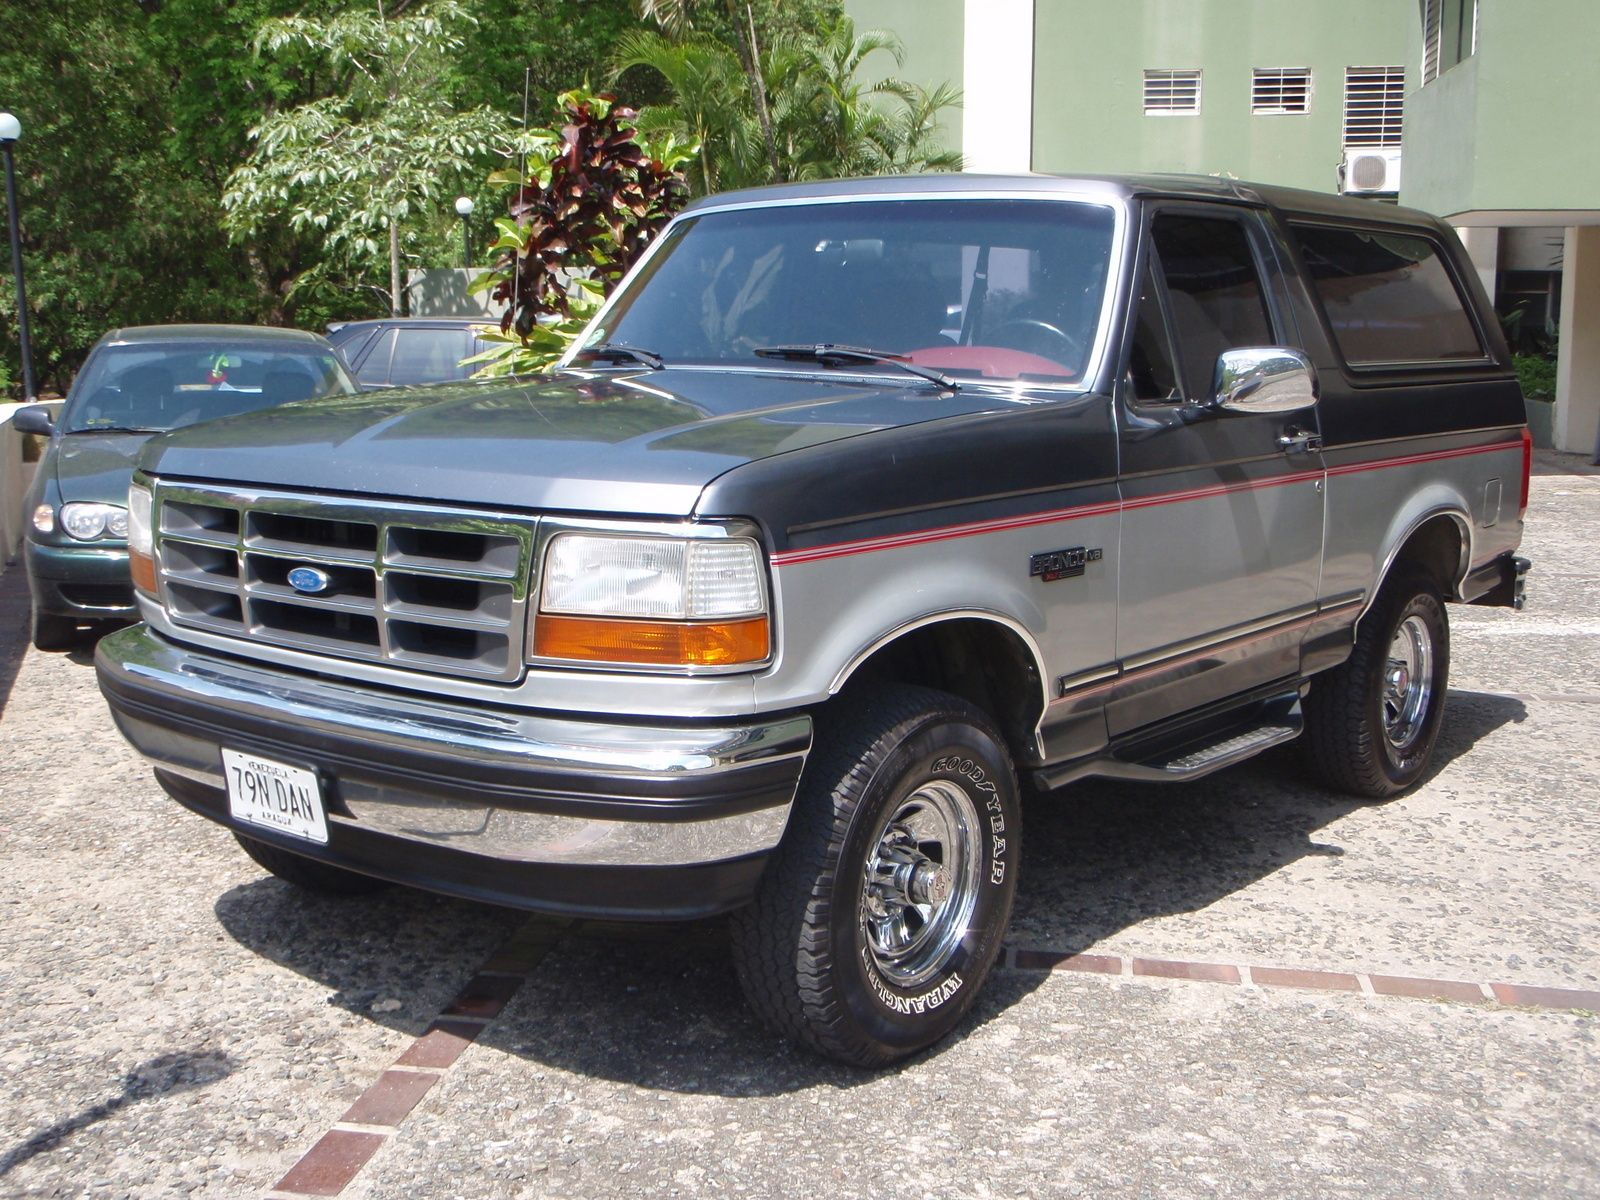 1993 Ford Bronco Sports Utility (With images) Ford